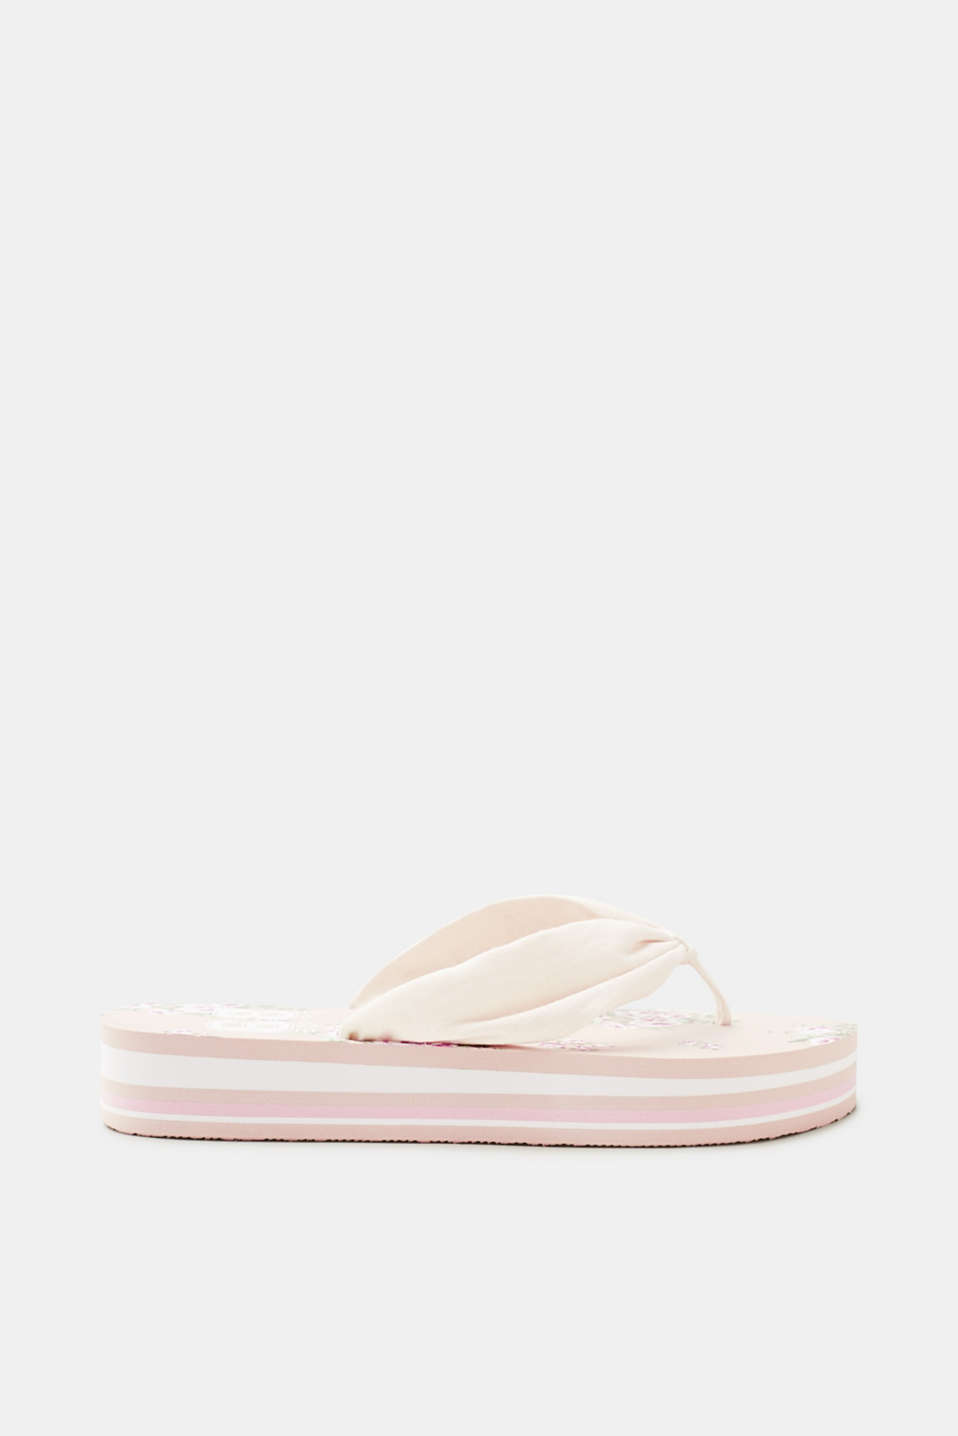 Esprit - Toe-post sandals with a floral printed platform sole